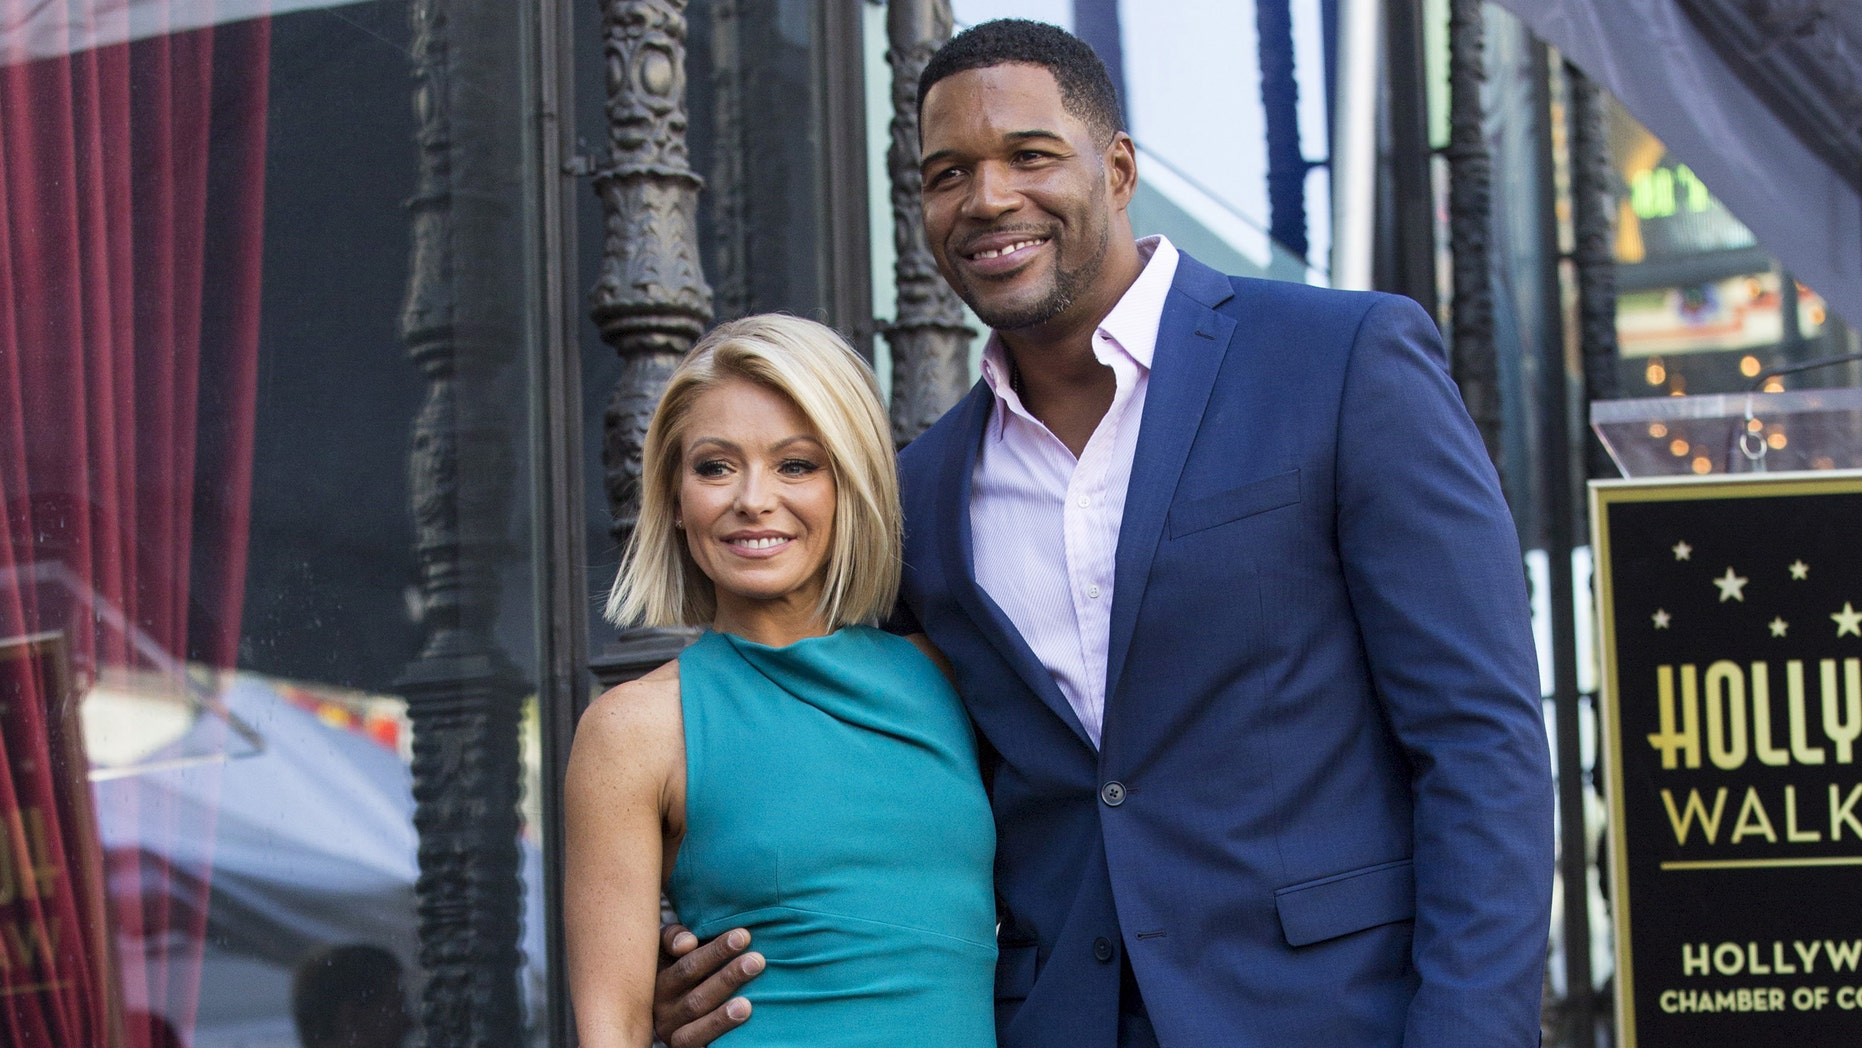 Kelly Ripa and Michael Strahan celebrate her star on the Hollywood Walk of Fame in 2015.